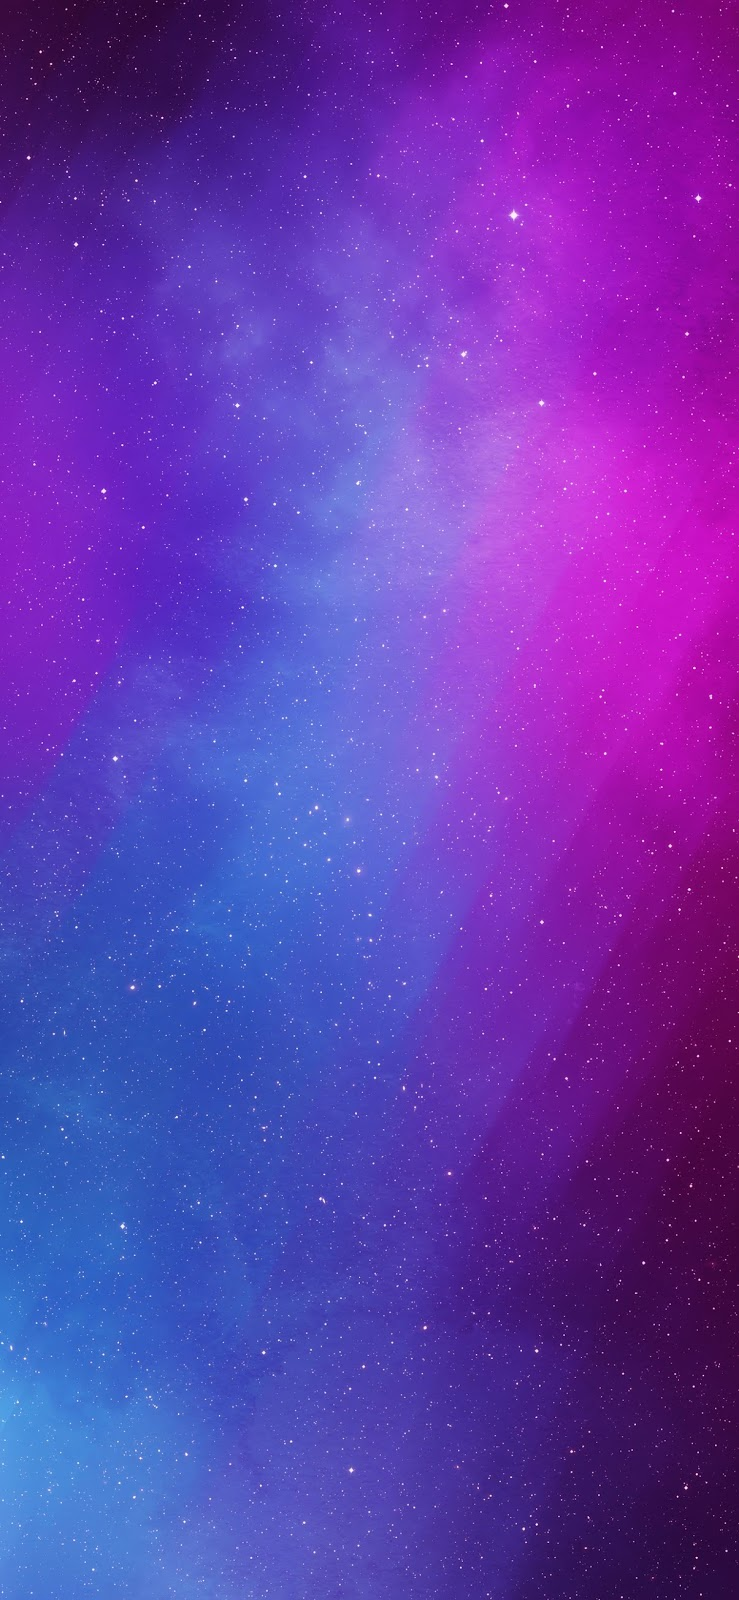 My Favorite Wallpaper Colorful Stars Iphone Xs Max Wallpaper